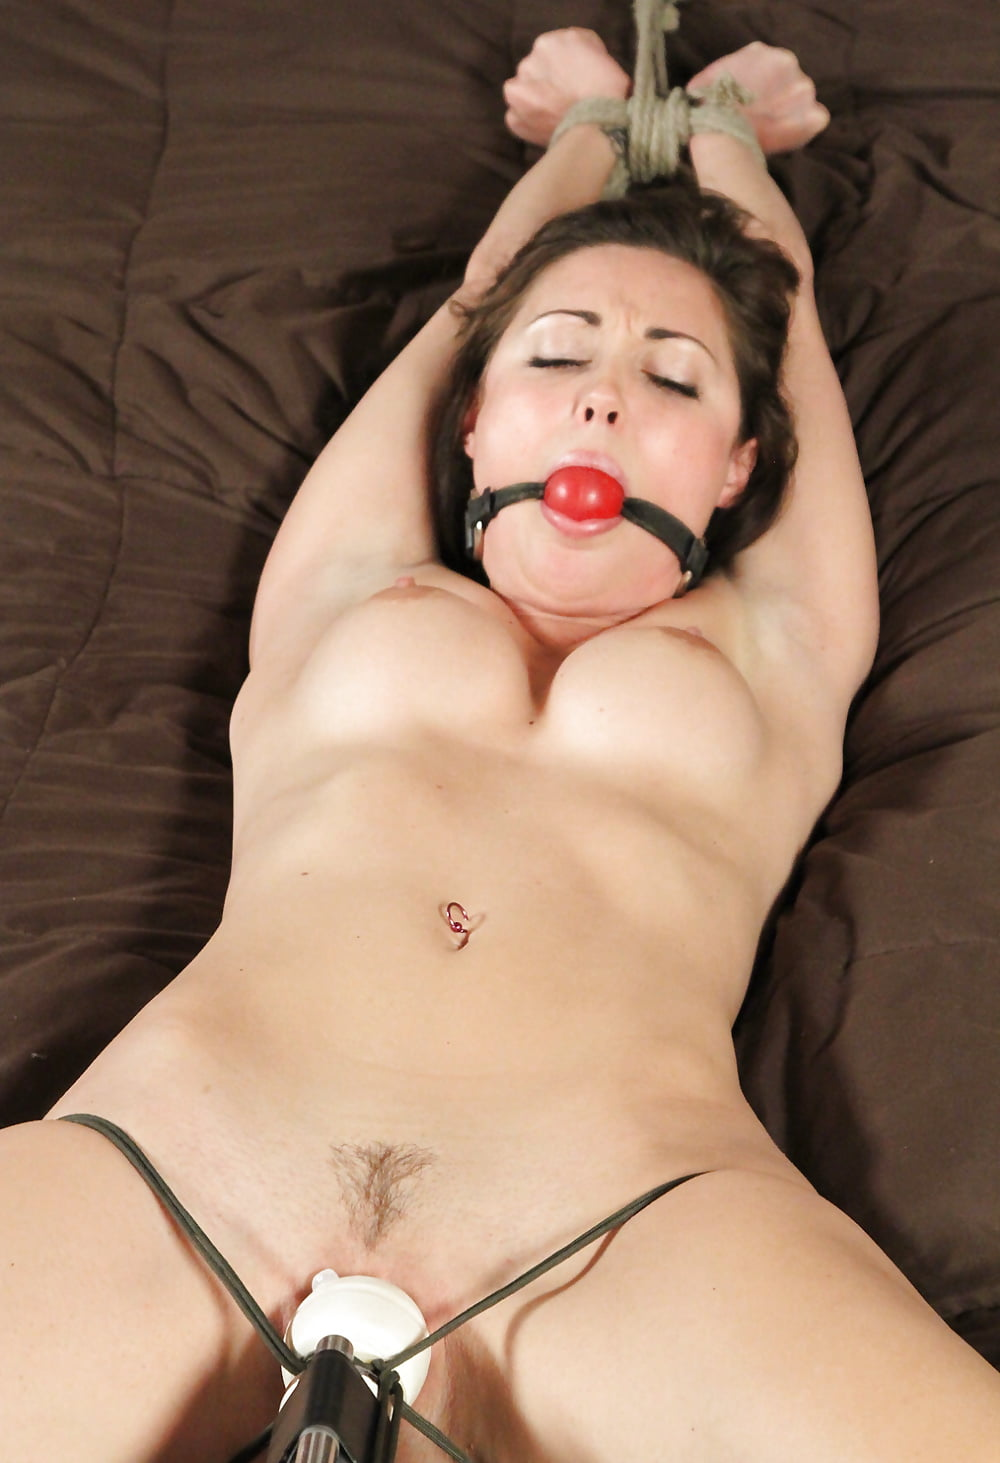 sucking-womans-nude-tied-forced-orgasm-narrow-leg